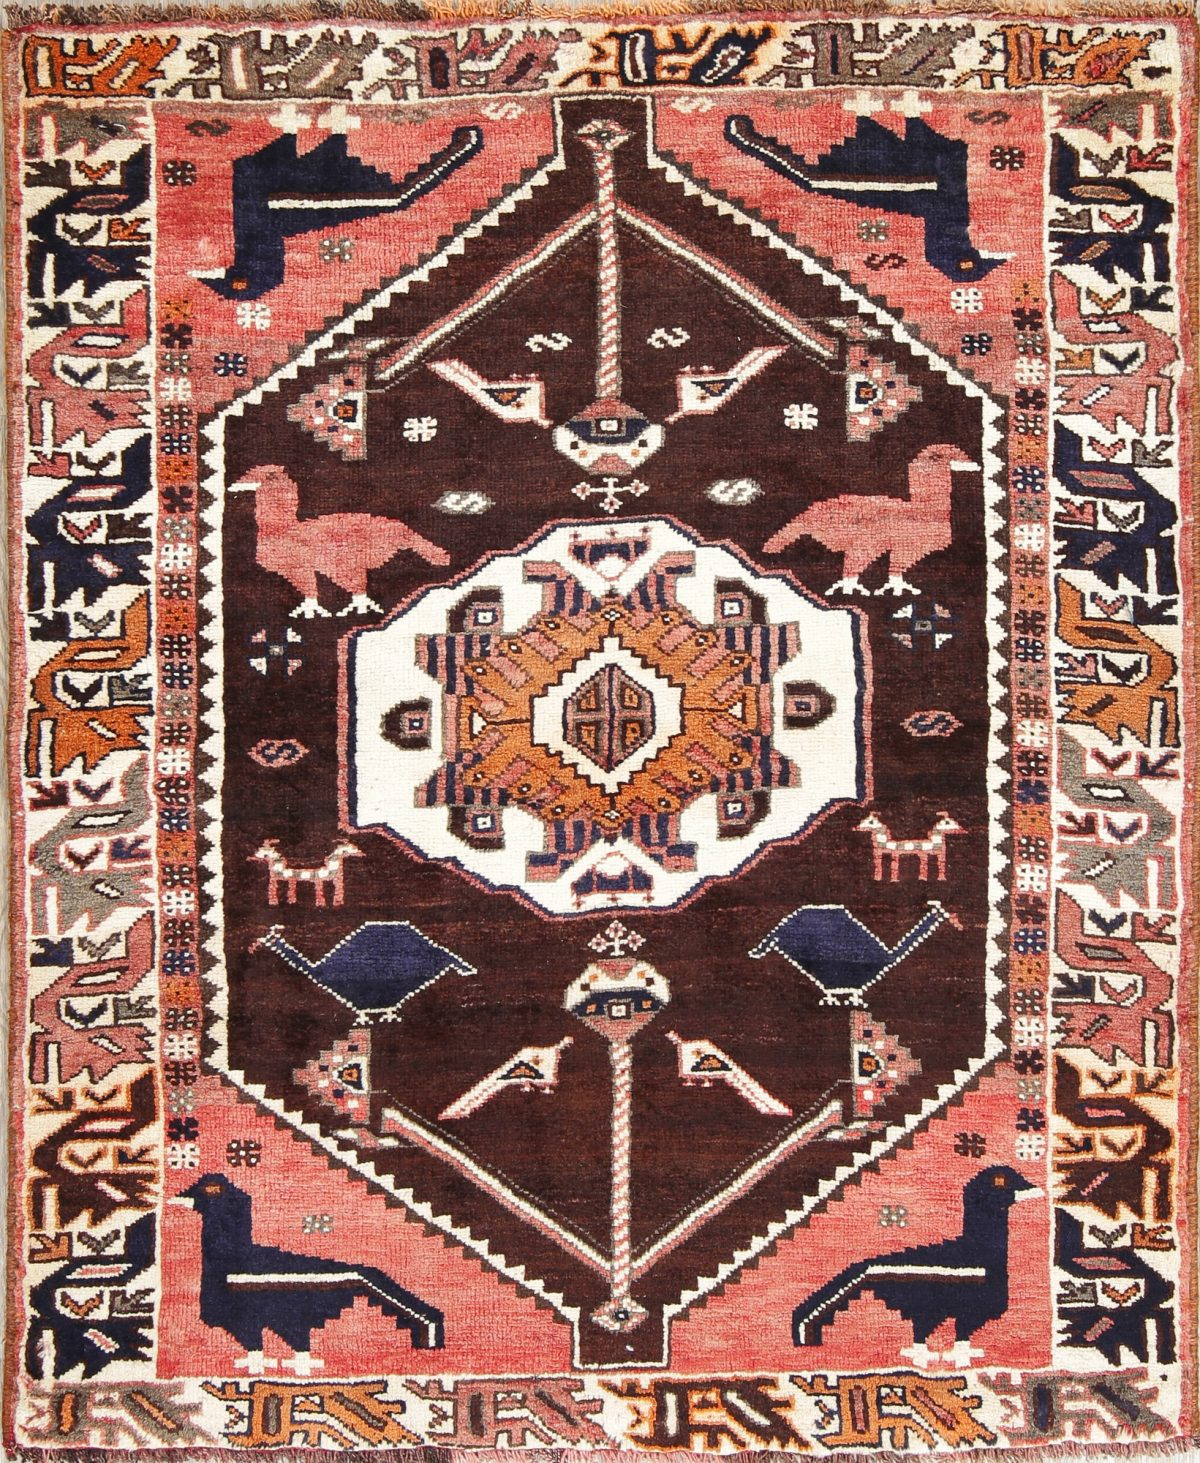 Hand-Knotted Brown Animal Pictorial Tribal Lori Persian Area Rug Wool 4x5